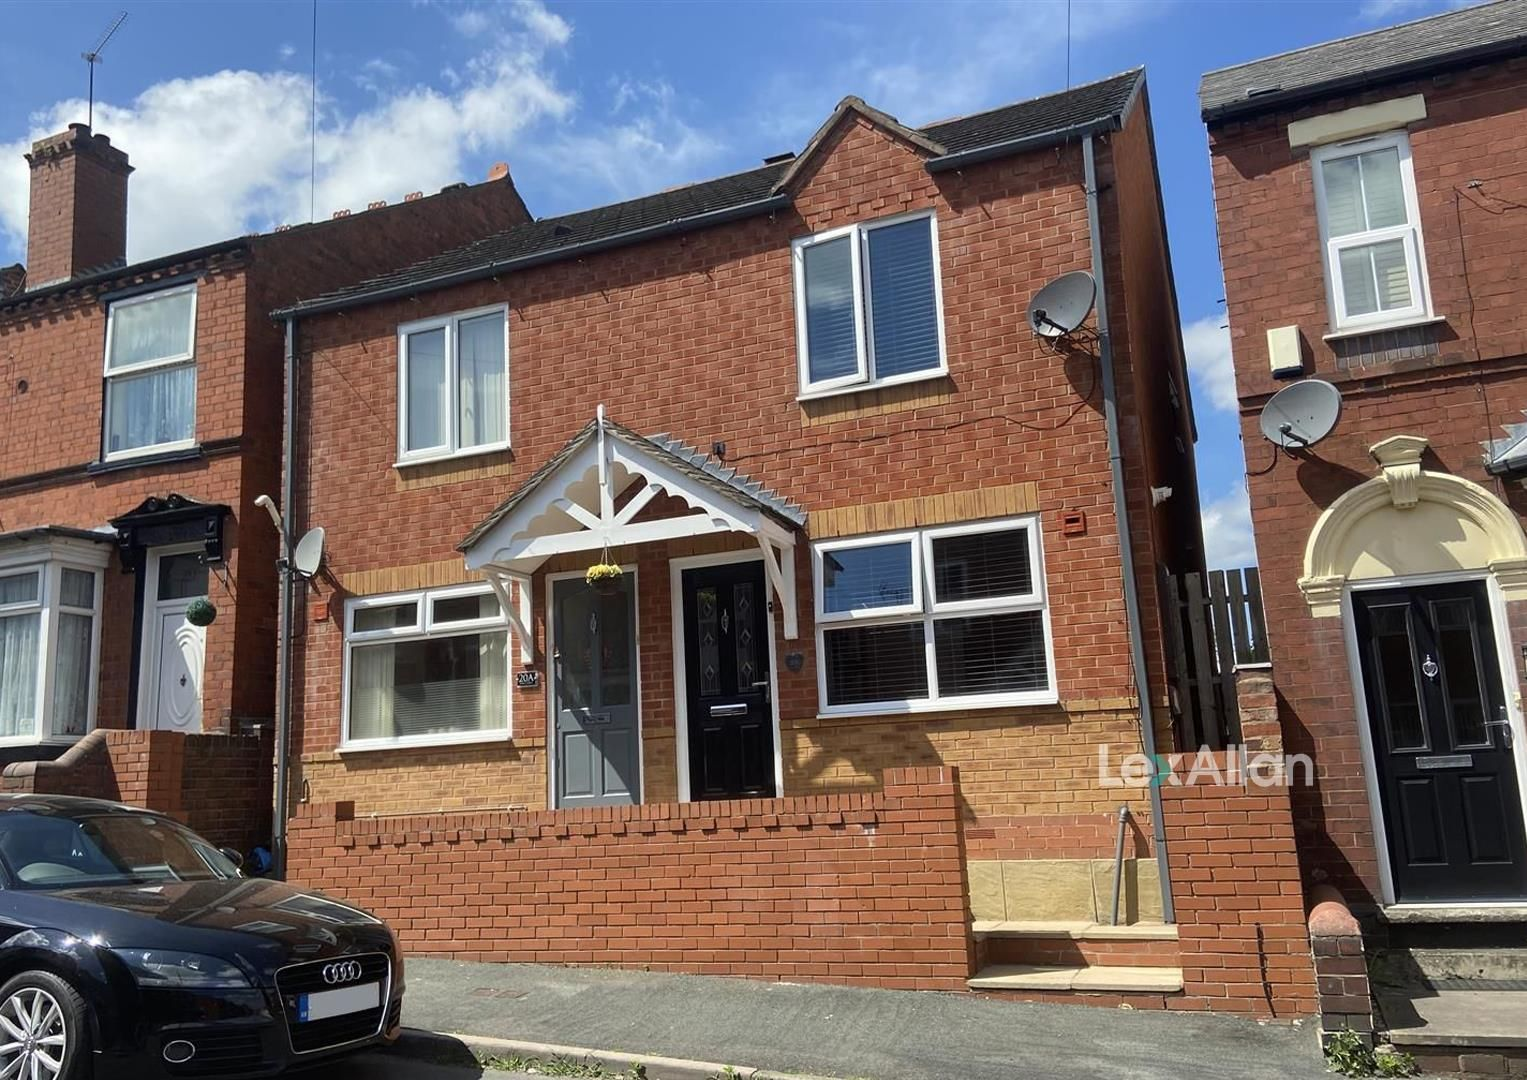 2 bed semi-detached for sale in Lye  - Property Image 1